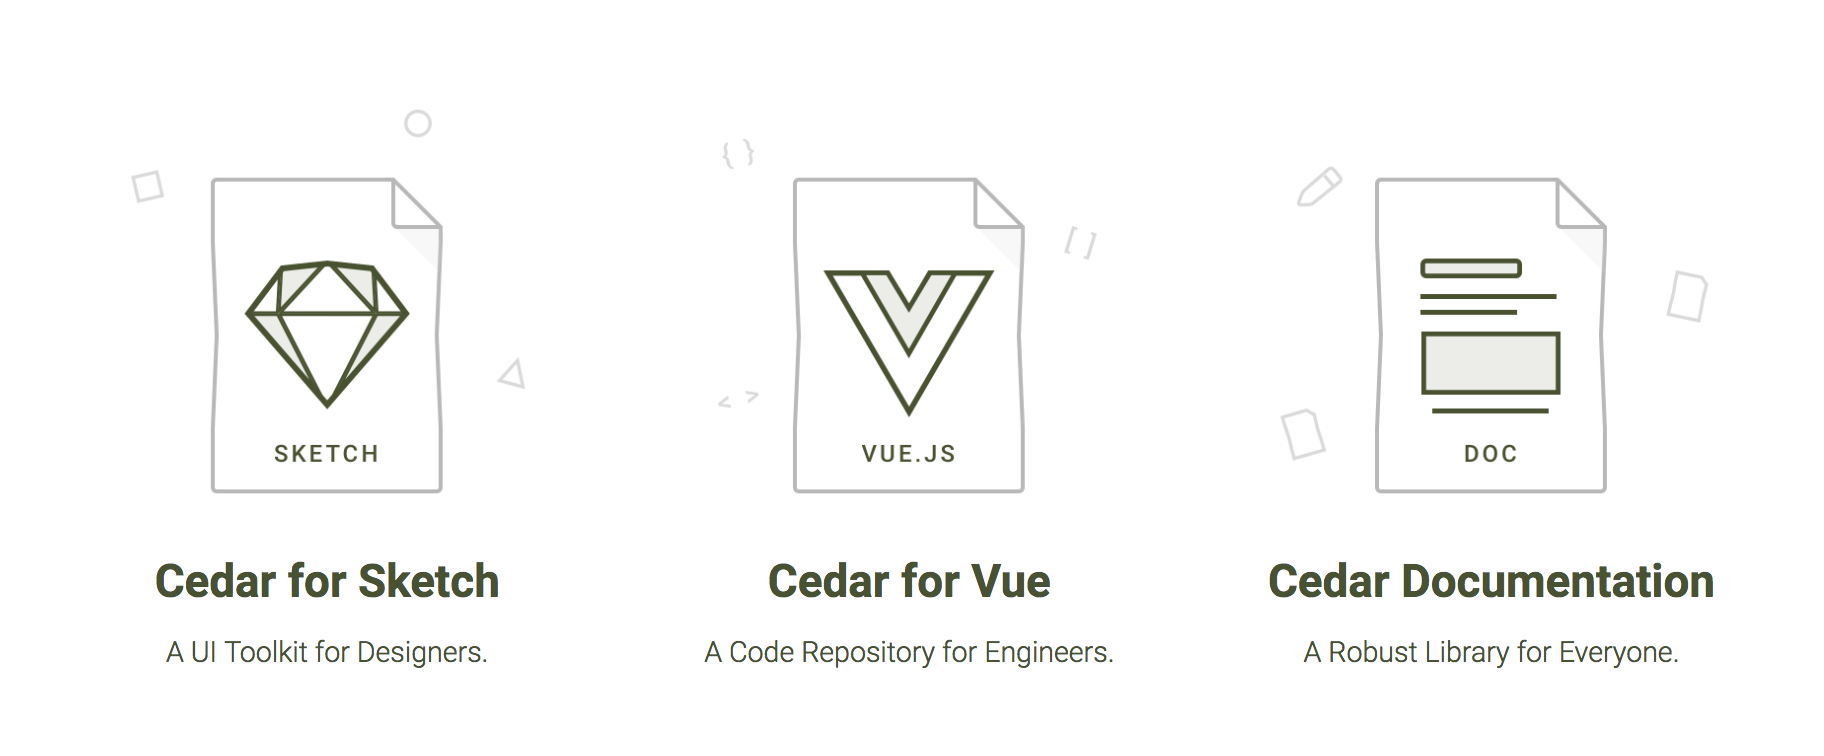 Cedar provides design assets for sketch, Vue.js components and the documentation to use them.